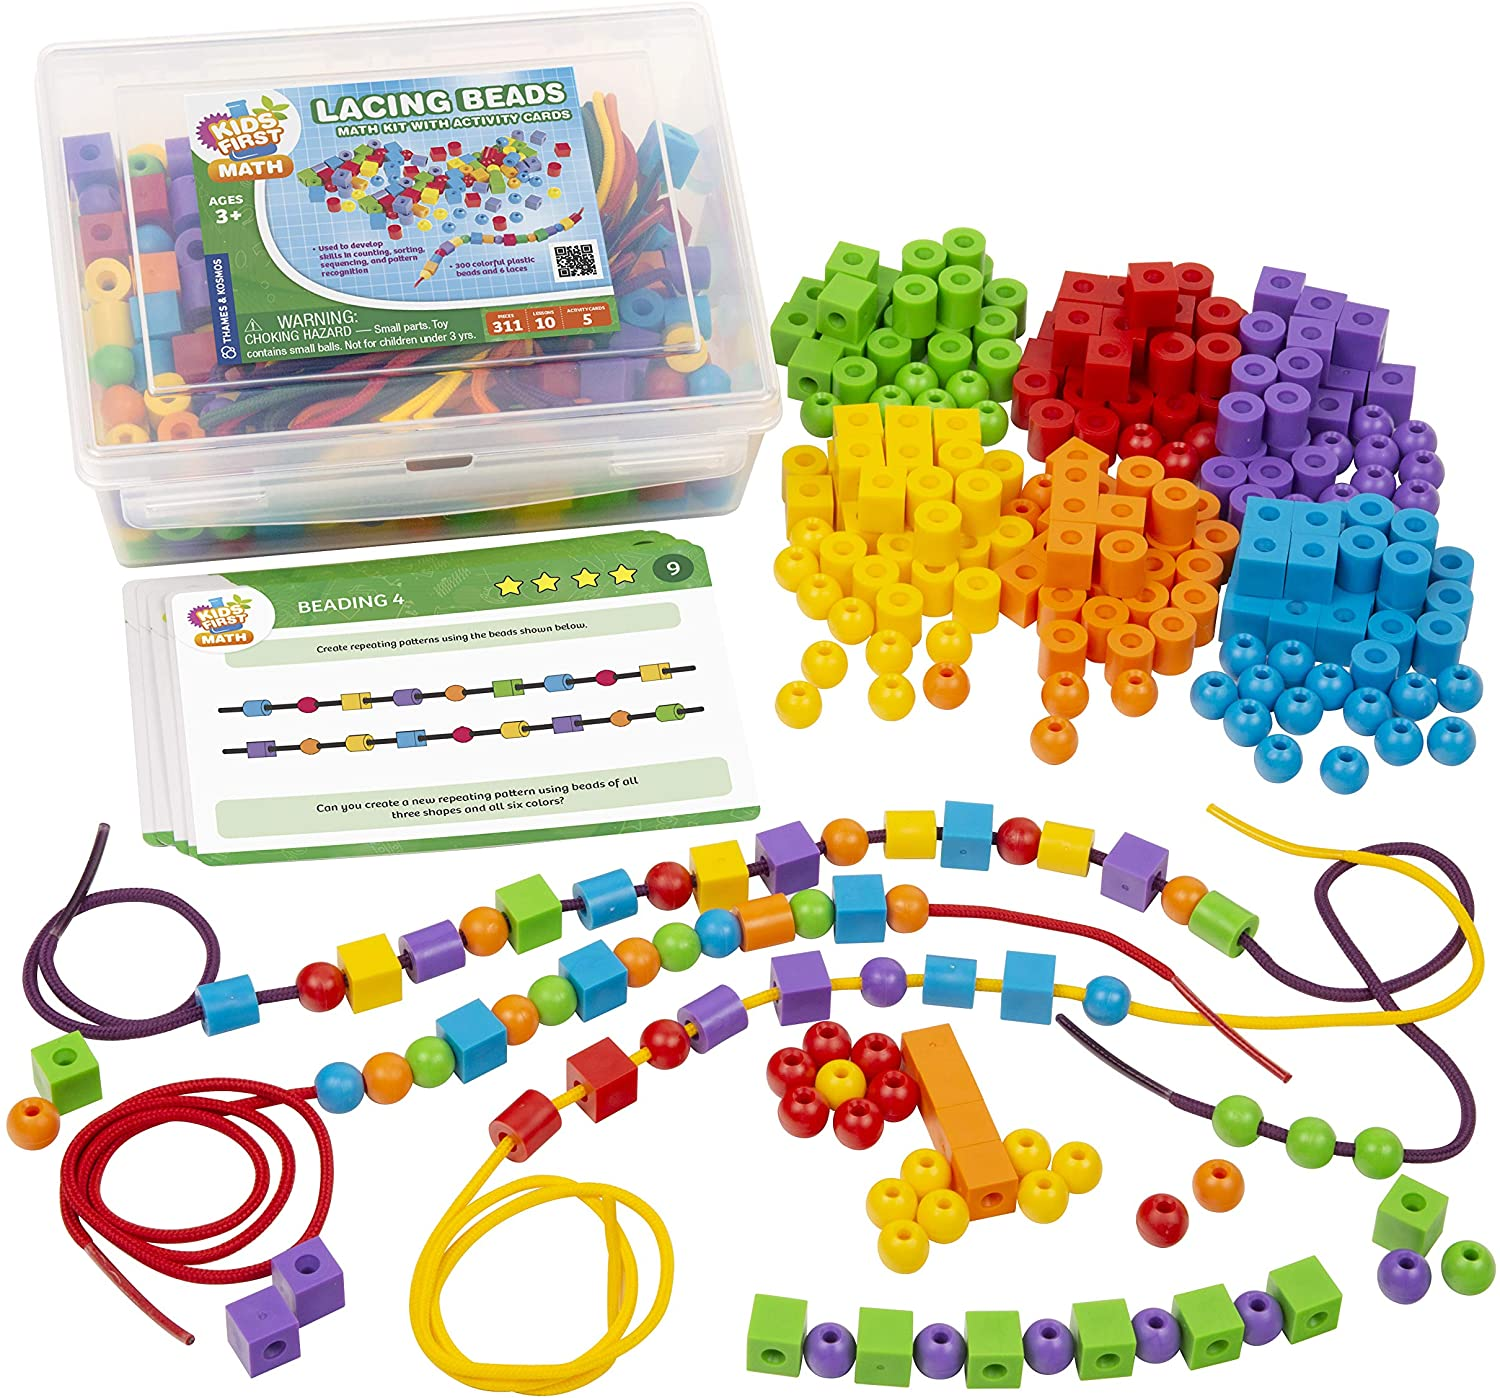 Kids First Math: Lacing Beads Math Kit w/ Activity Cards | Develop Skills in Counting, Sorting, Sequencing, Pattern Recognition | Visual Hands-on Math for At-Home or Classroom Learning, Ages 3+